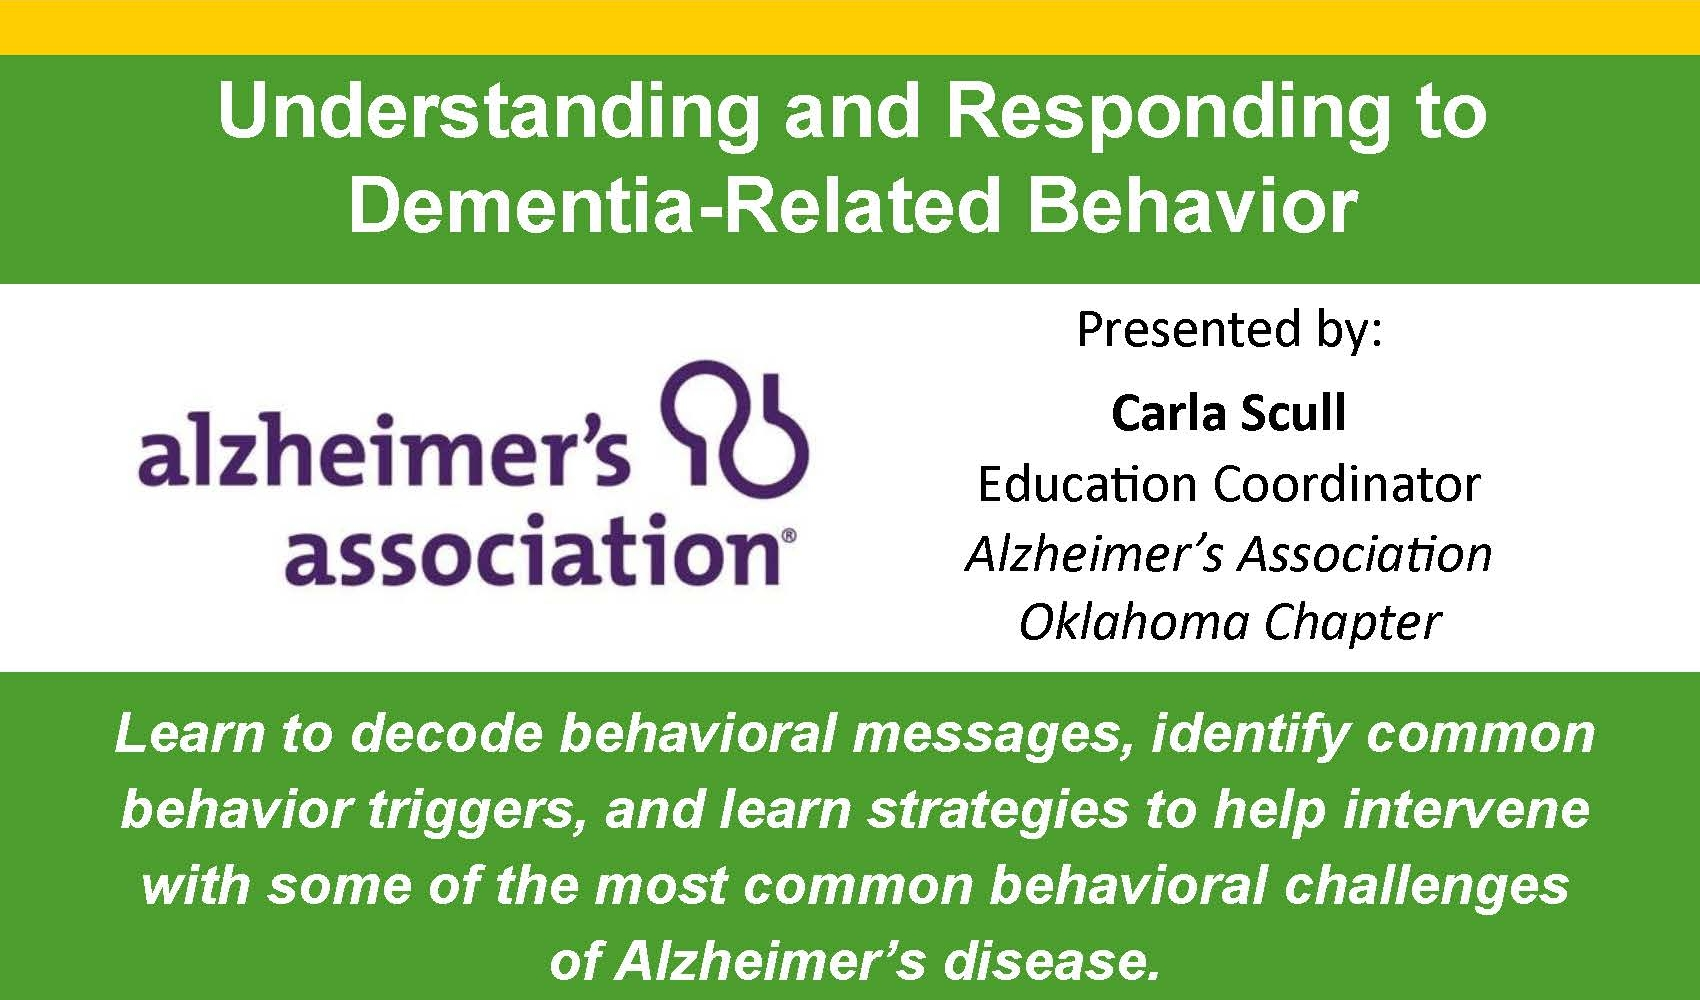 030718 Understanding and Responding to Dementia-Related Behavior.jpg